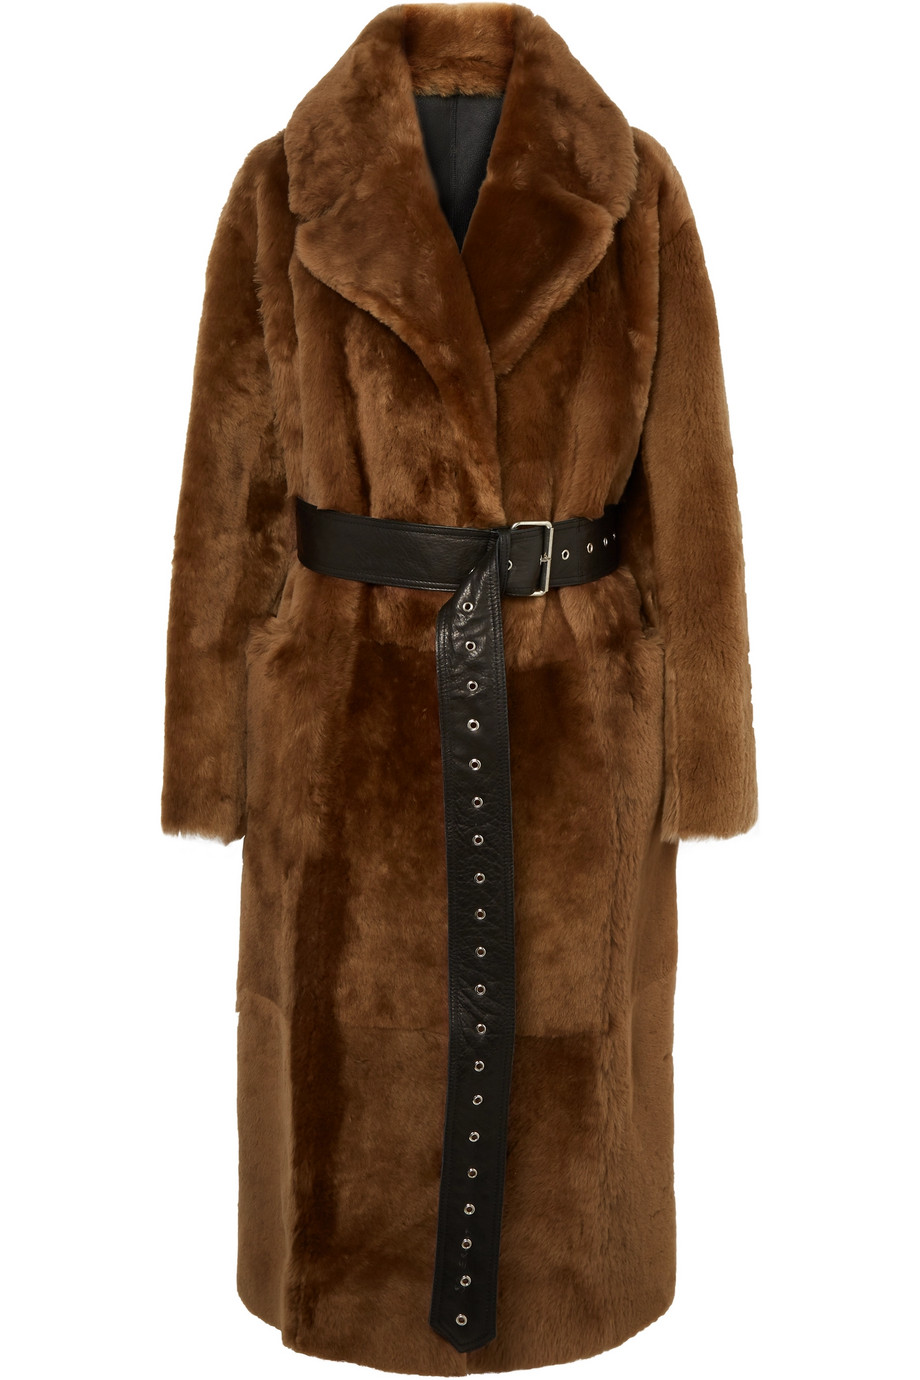 COMMON LEISURE Love oversized belted shearling coat, £2,985